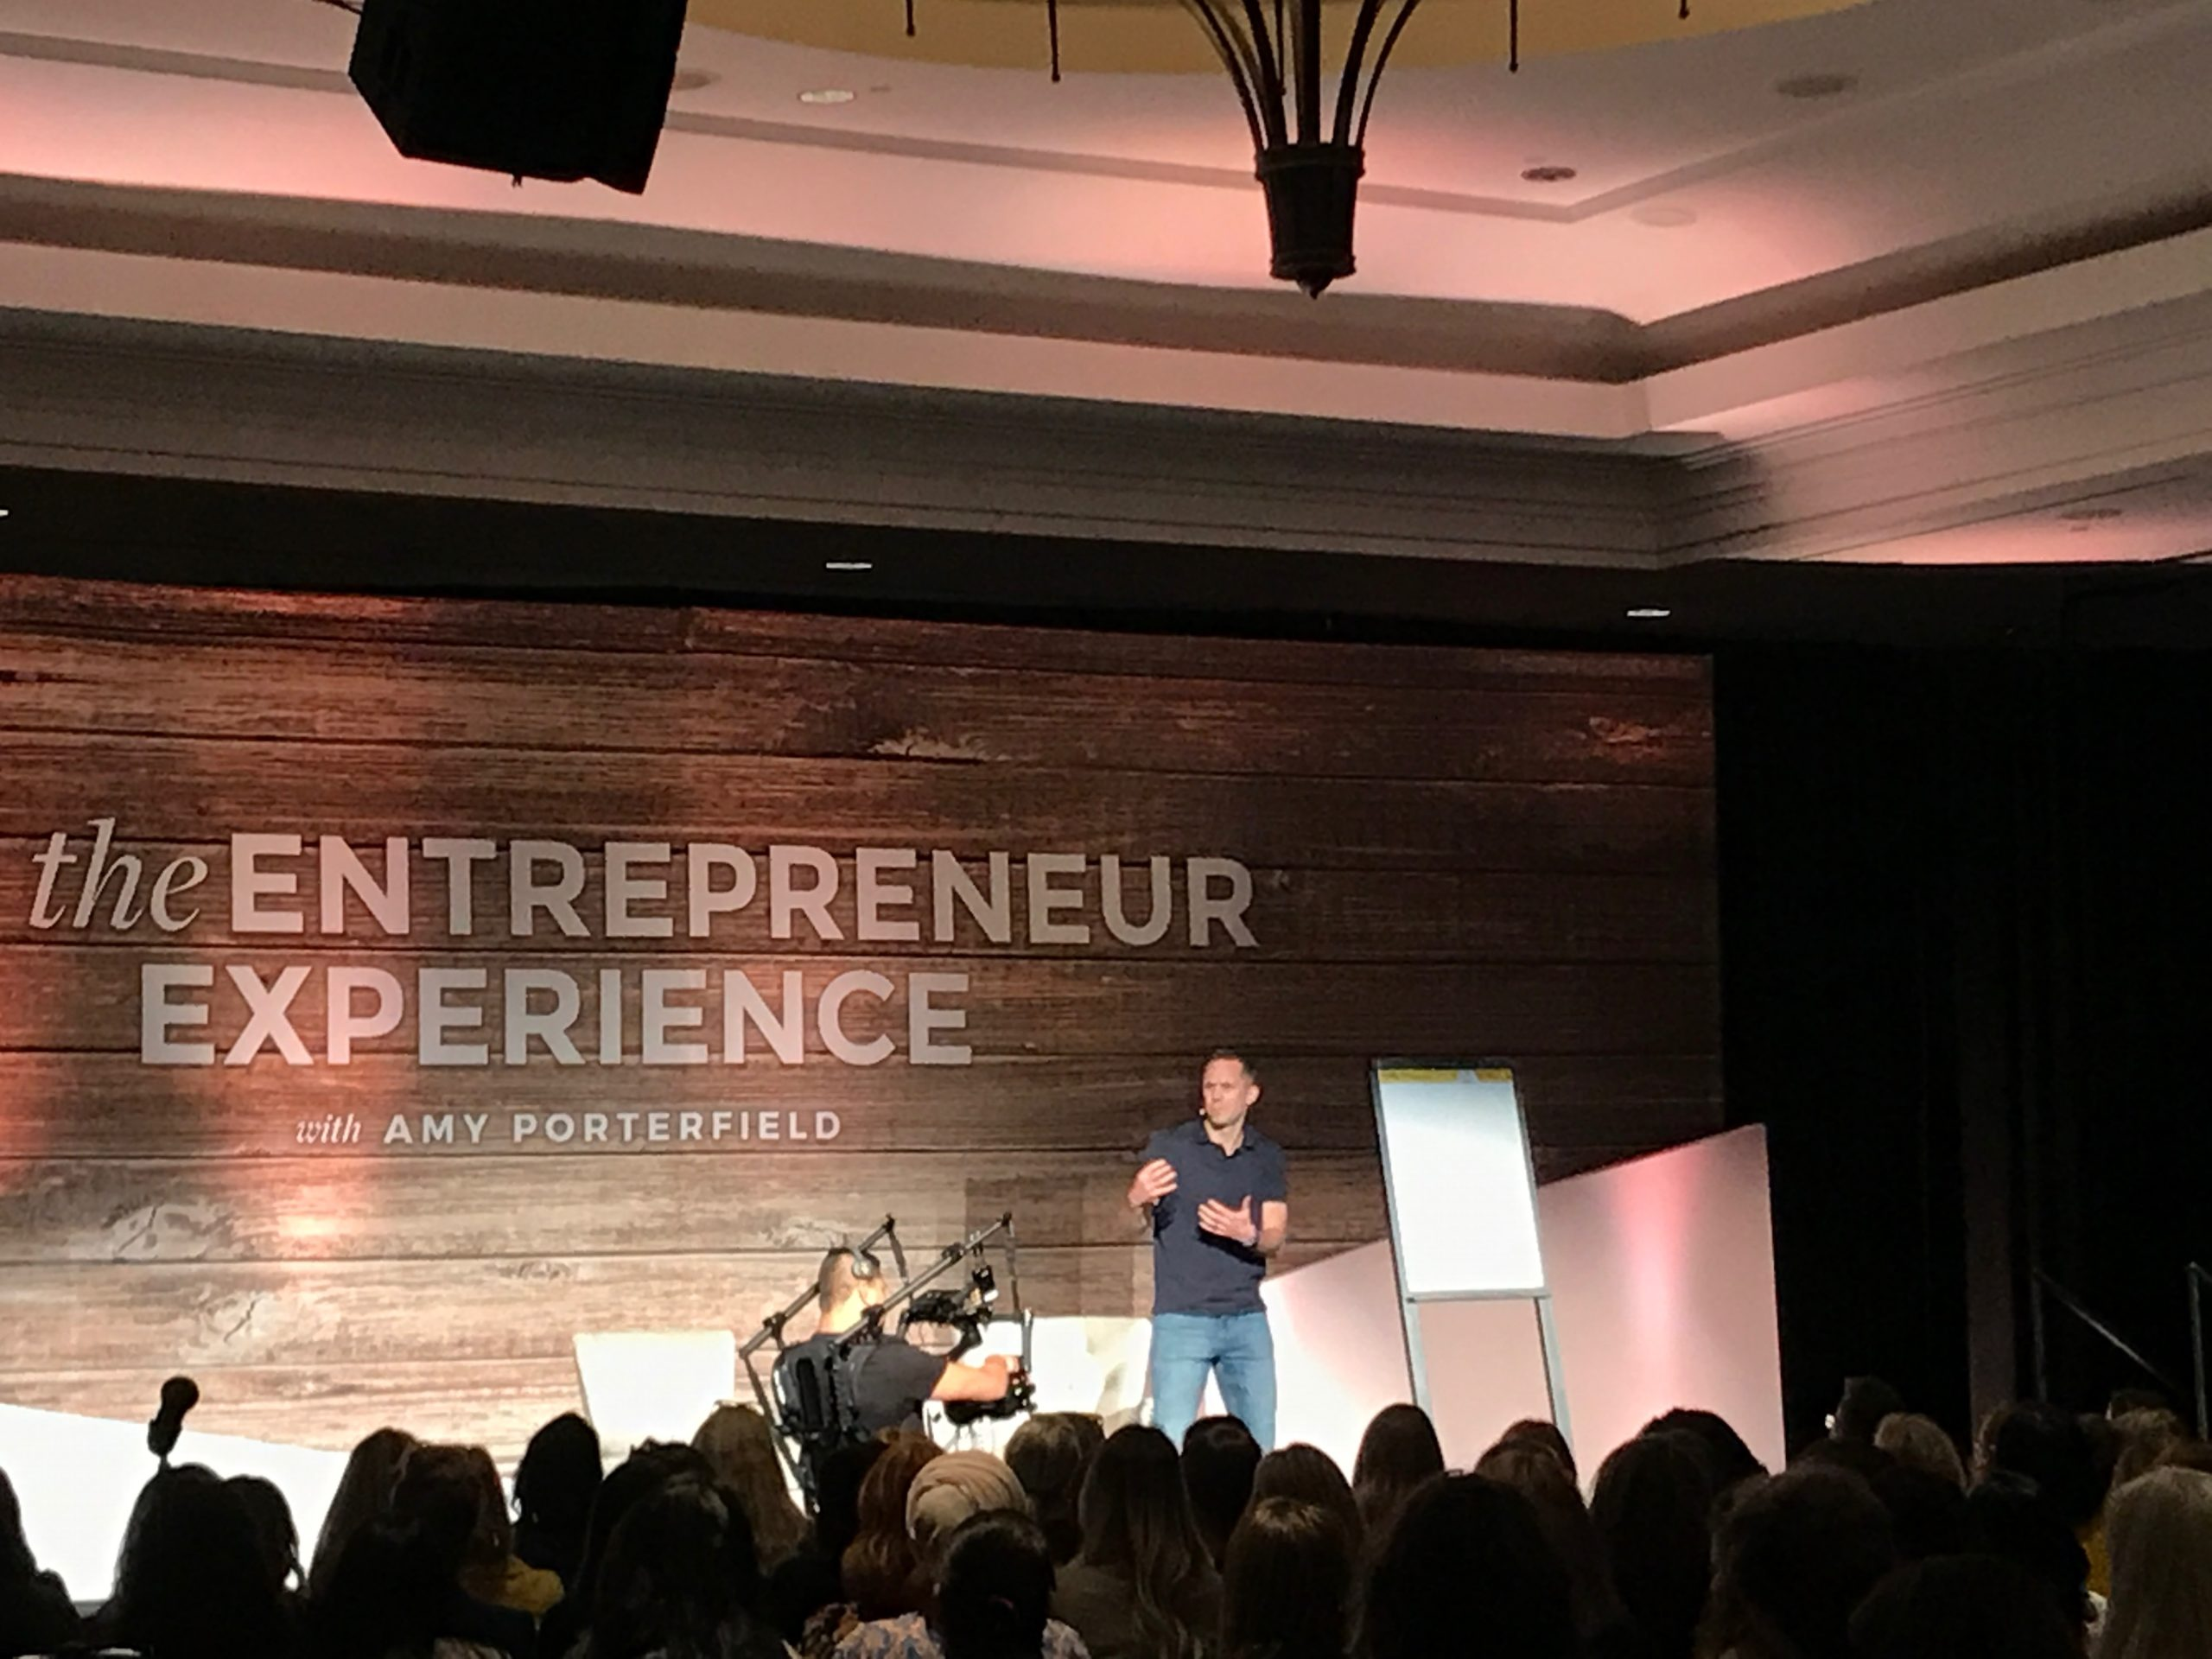 Stu McLaren at the Amy Porterfield Entrepreneur Experience